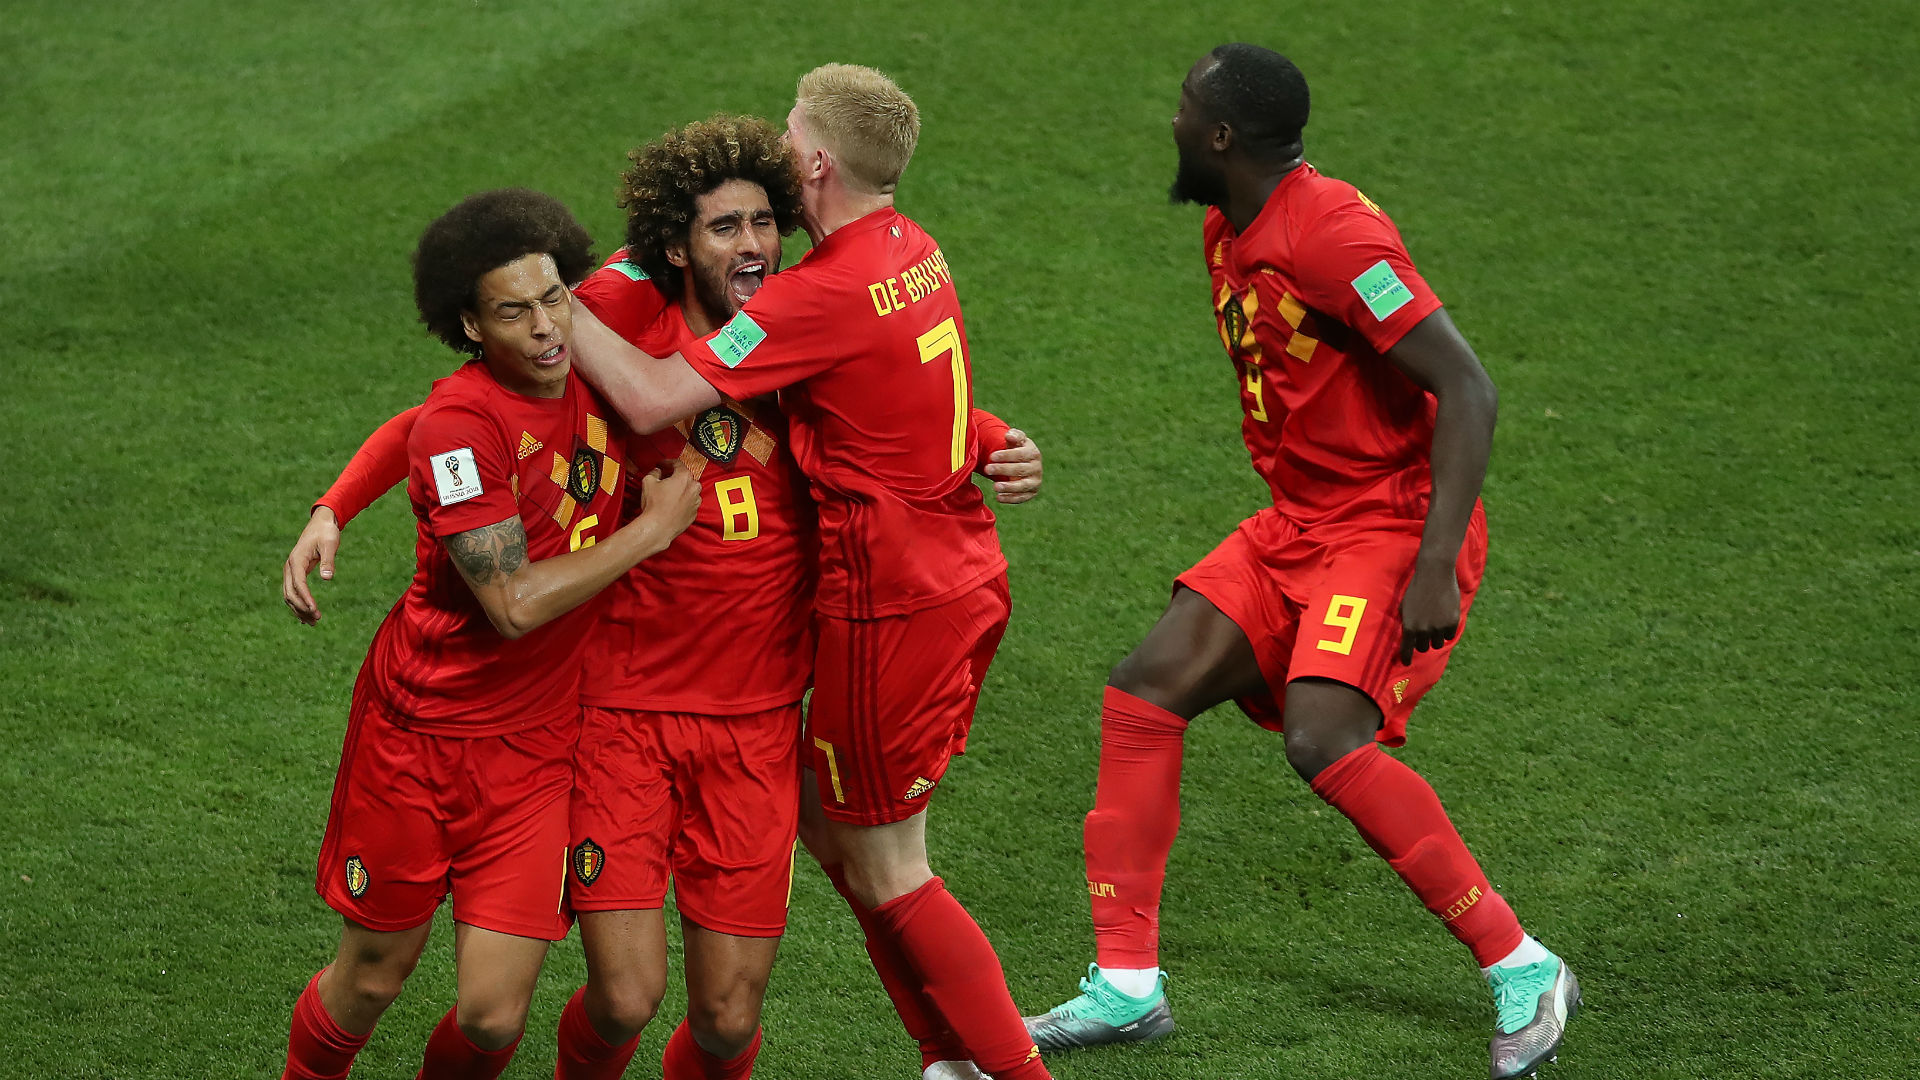 Belgium beat Brazil to enter semi-finals